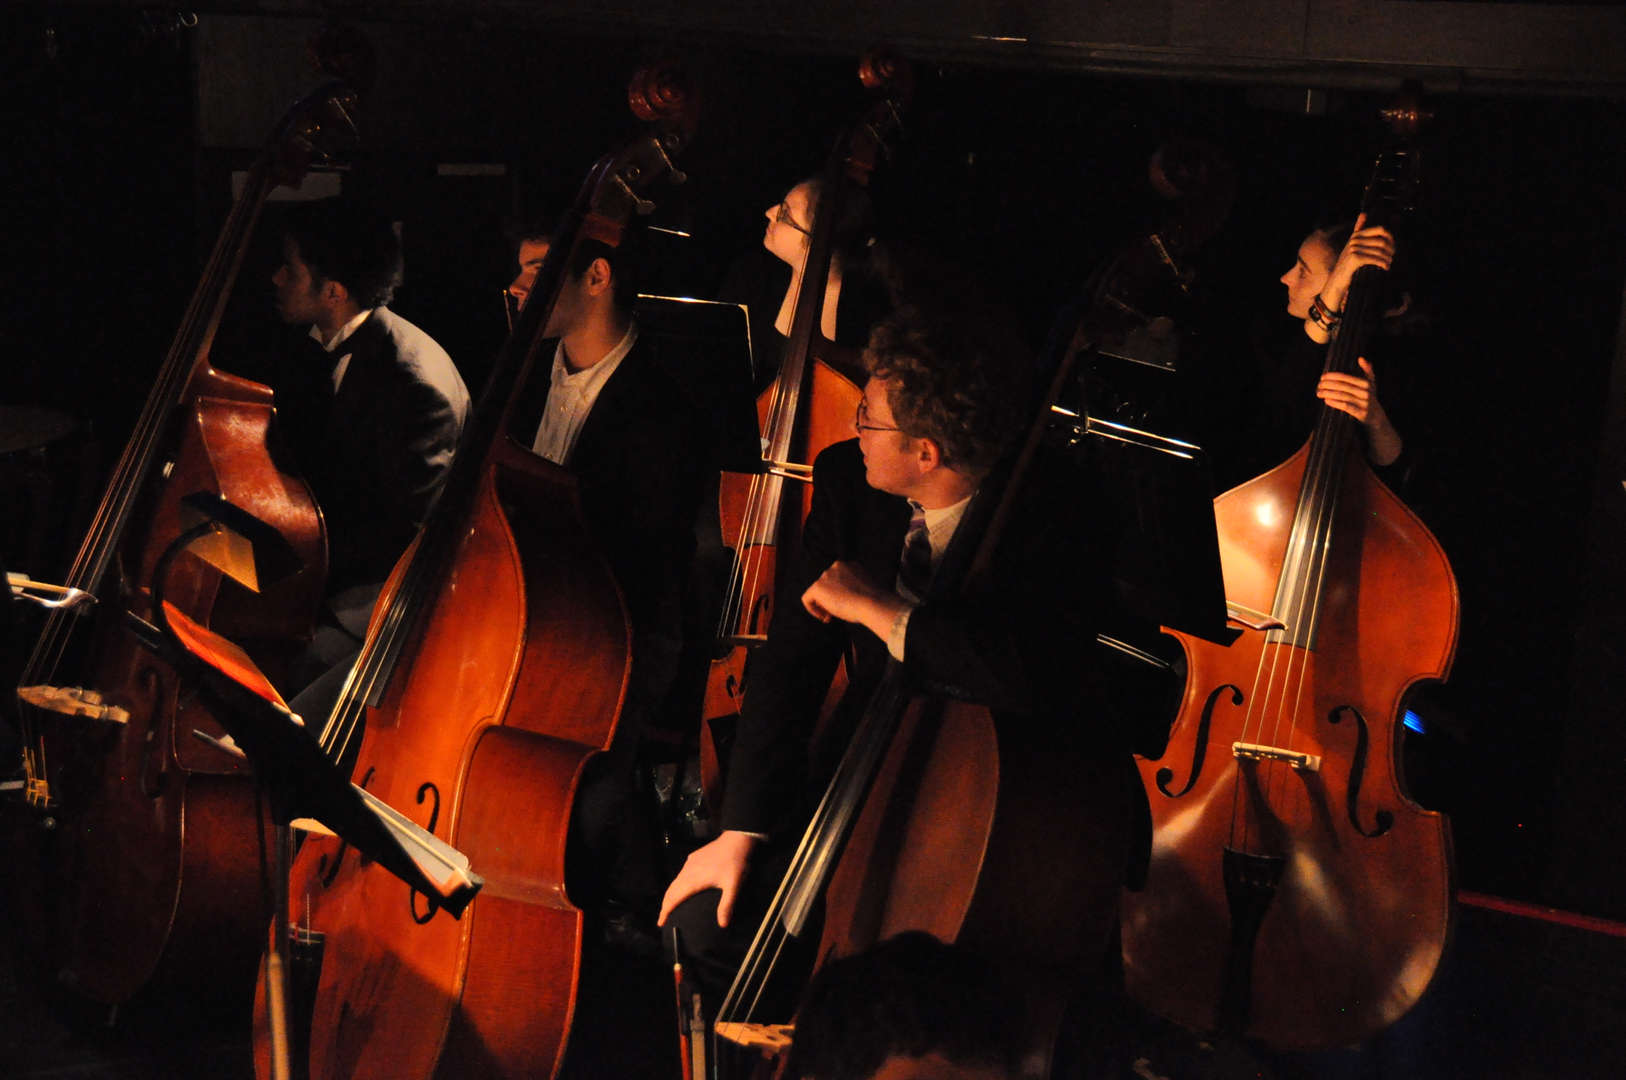 Orchestra students playing bass instruments